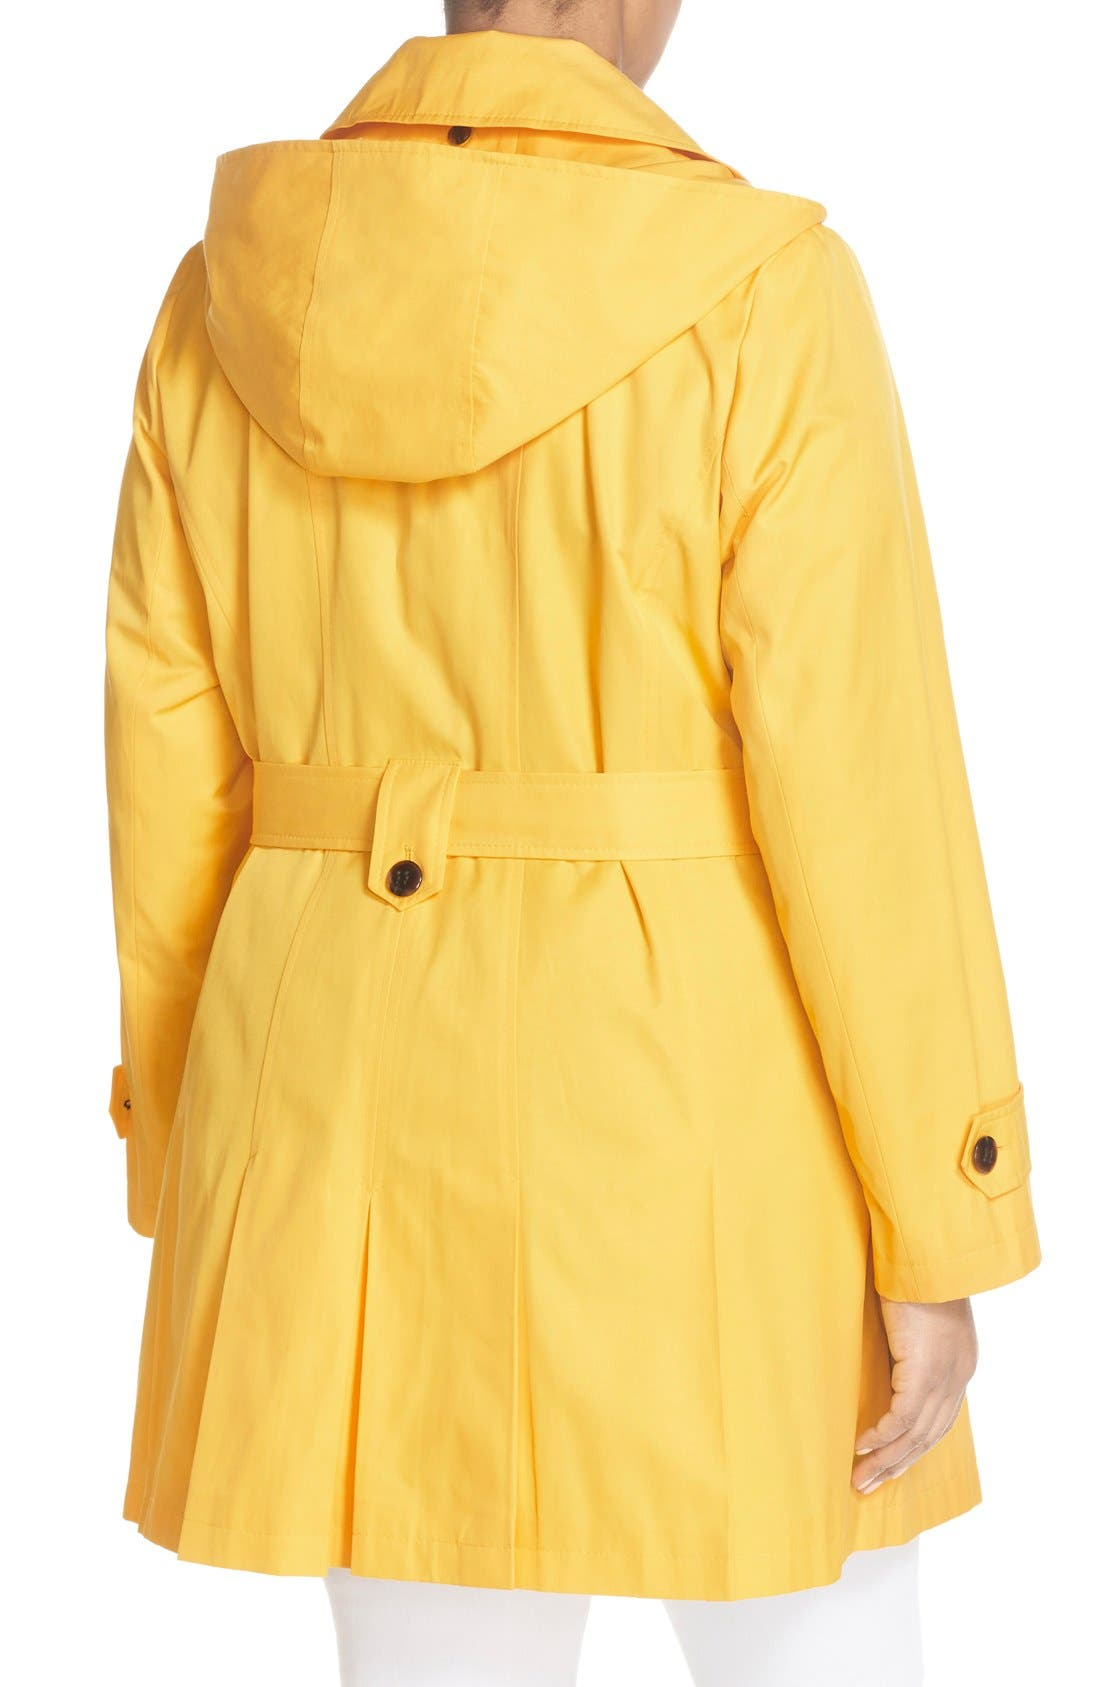 'Scarpa' Single Breasted Trench Coat,                             Alternate thumbnail 18, color,